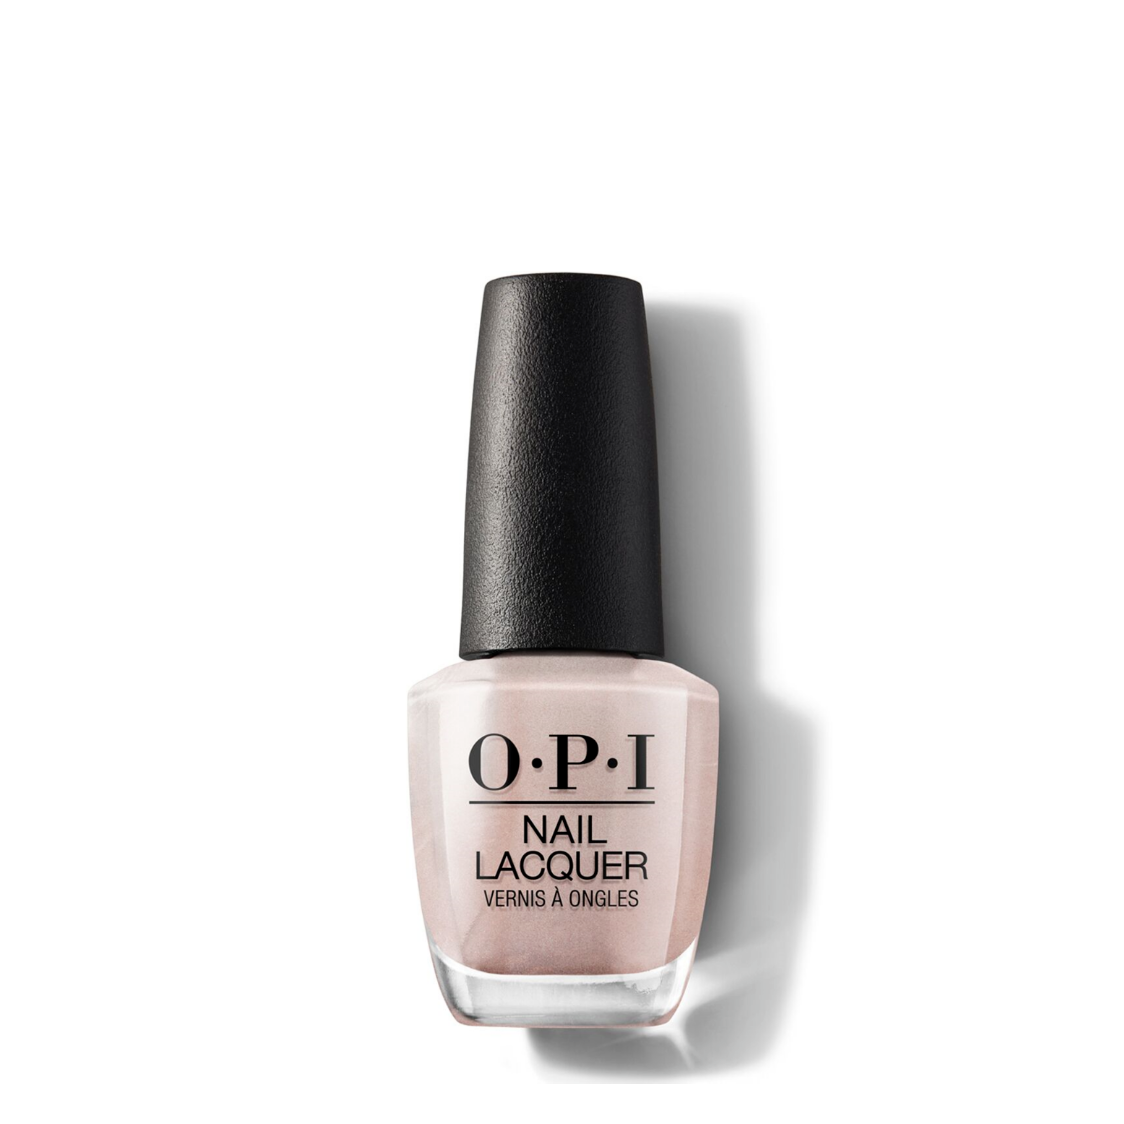 Opi Sheers 2019 Nail Lacquer Chiffon-d of You 15ml